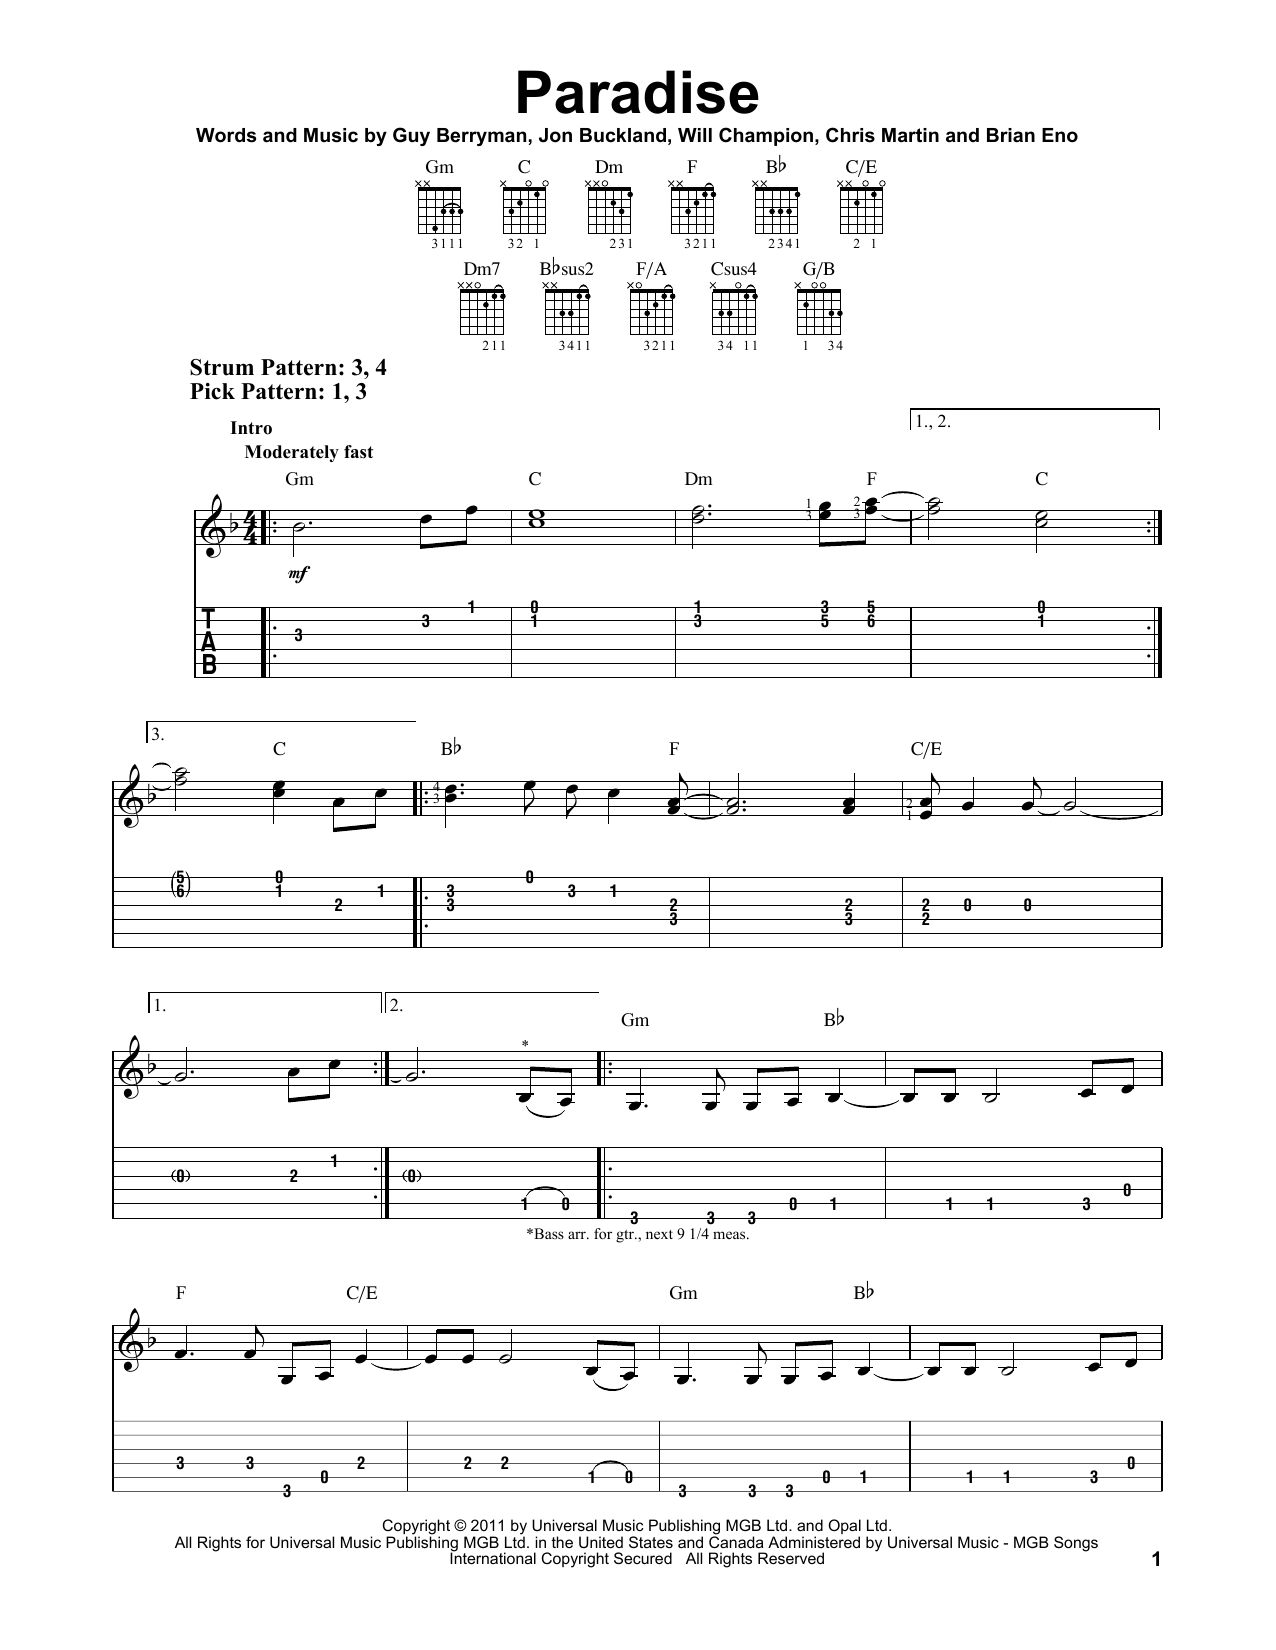 Paradise Sheet Music Direct